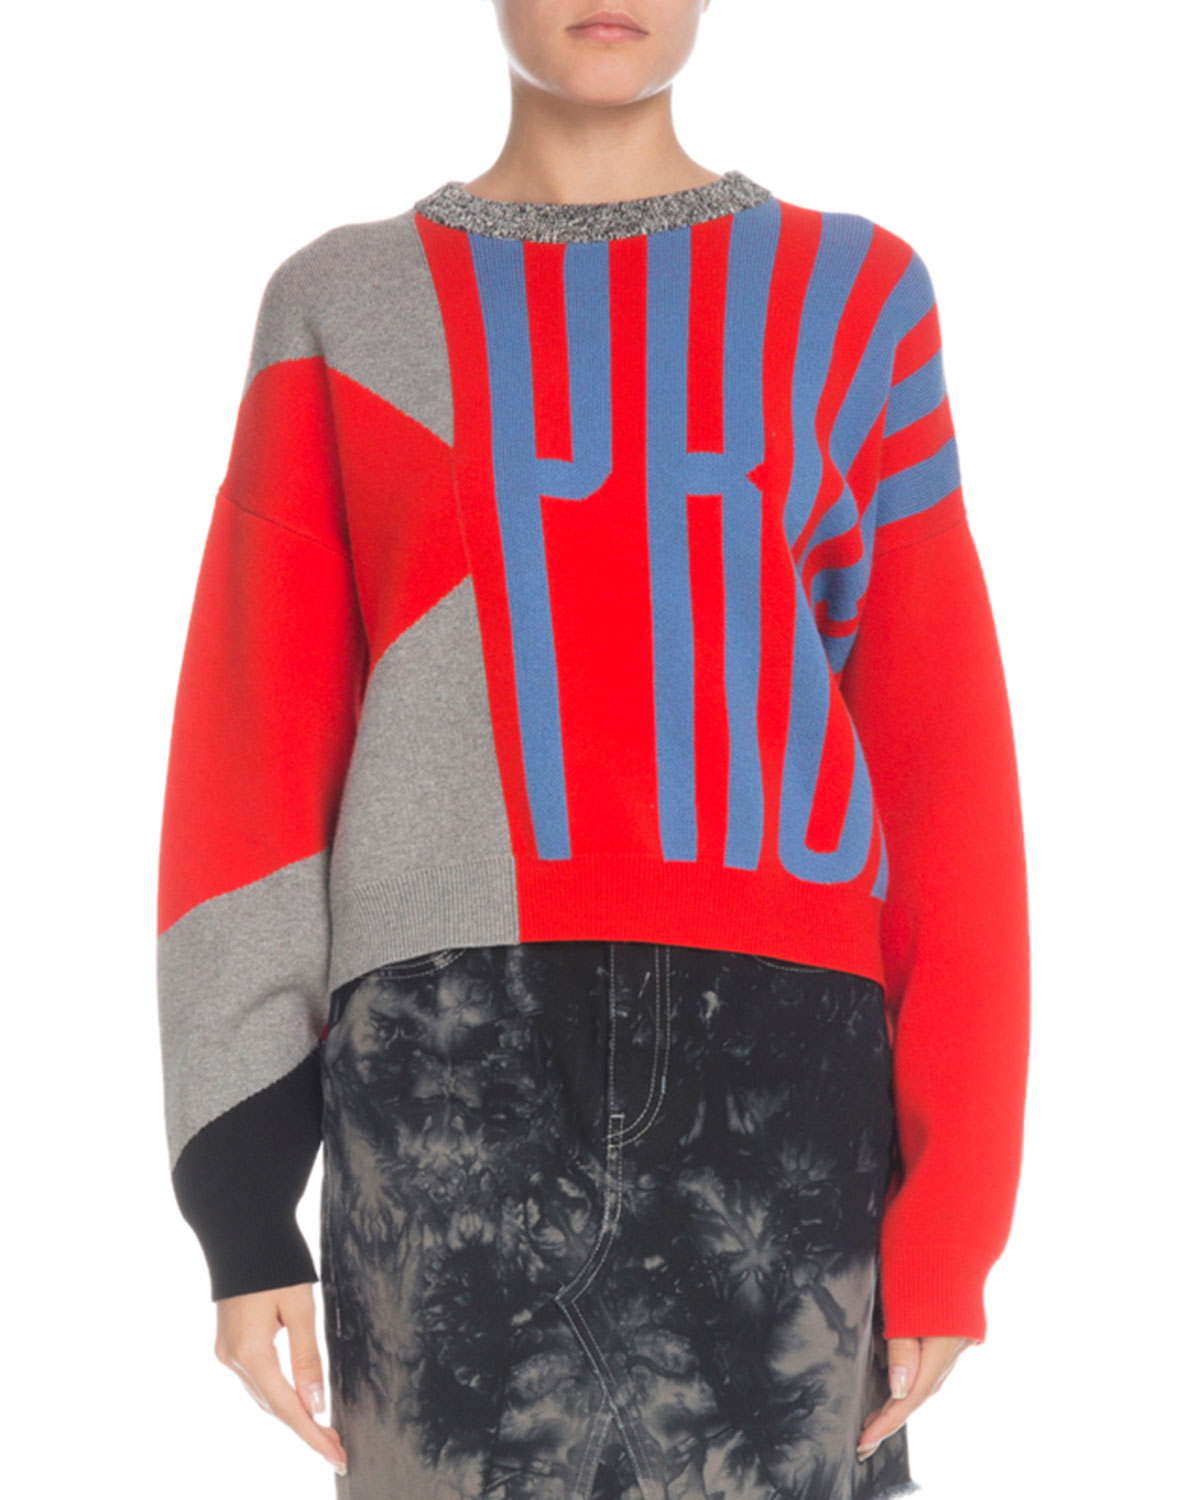 PSWL Knit Logo Colorblock Crewneck Pullover Sweater in Bright Red